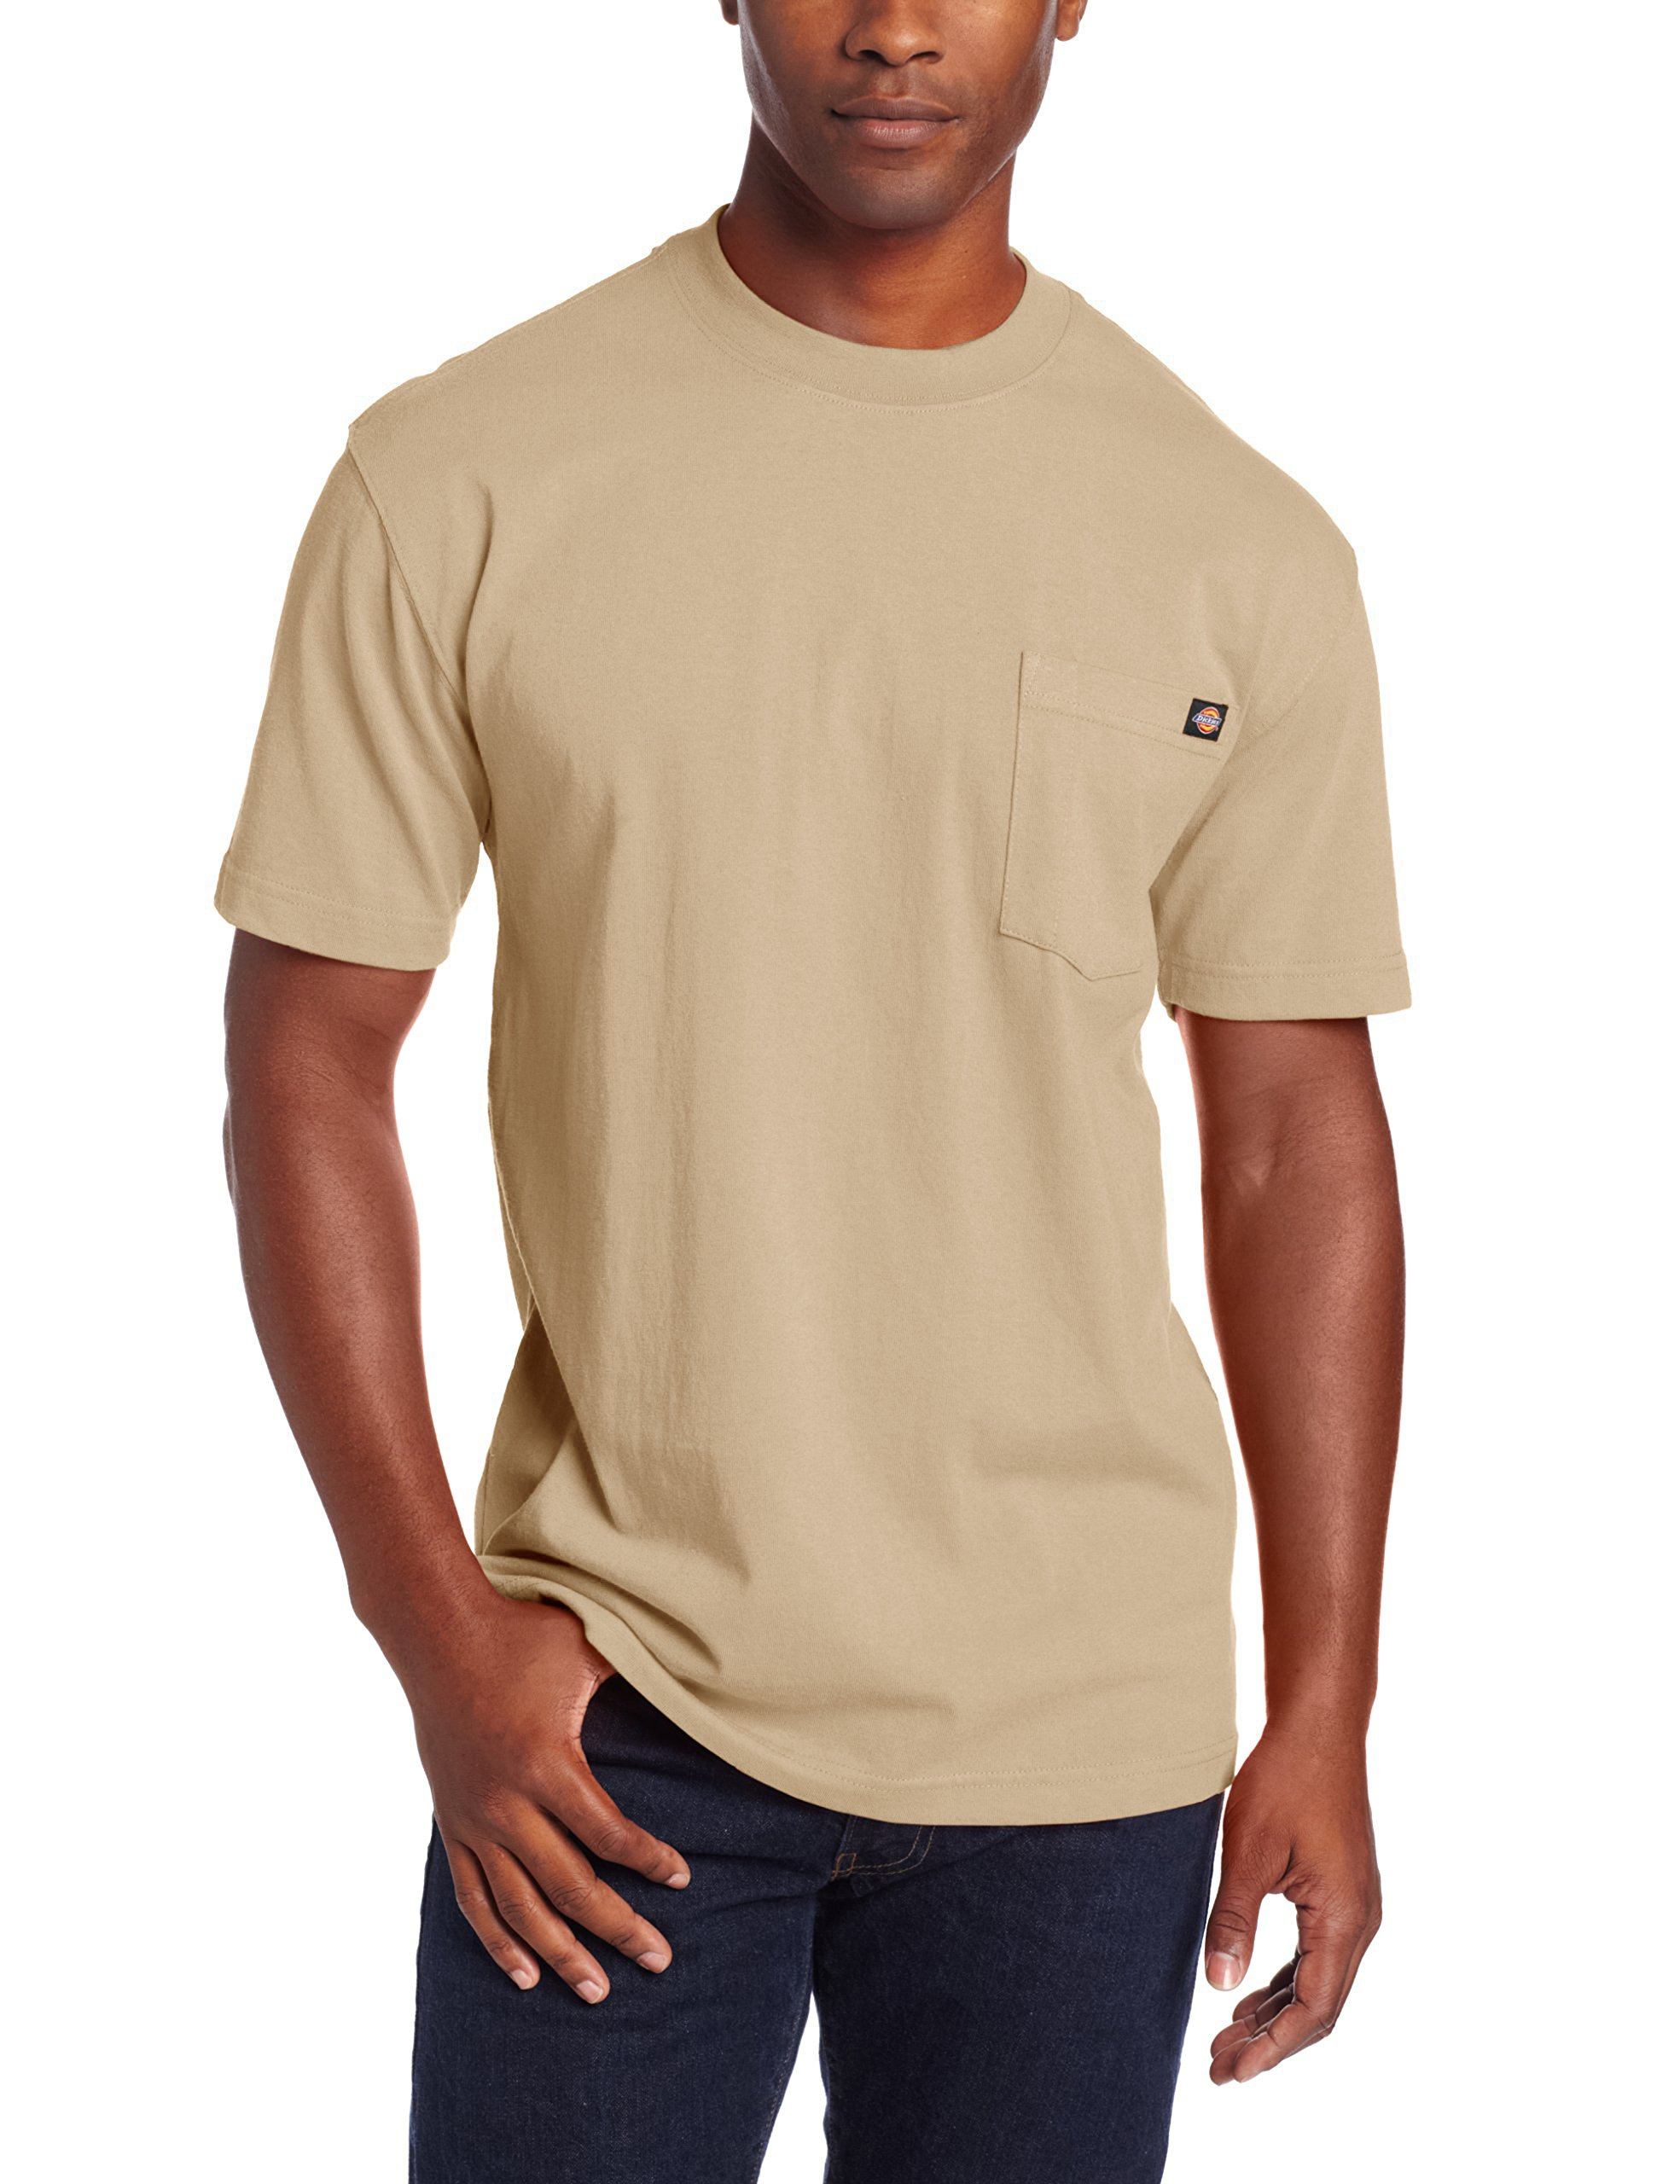 Dickies Men's Heavyweight Crew Neck Short Sleeve Tee Big-tall,Desert Sand,X-Large Tall